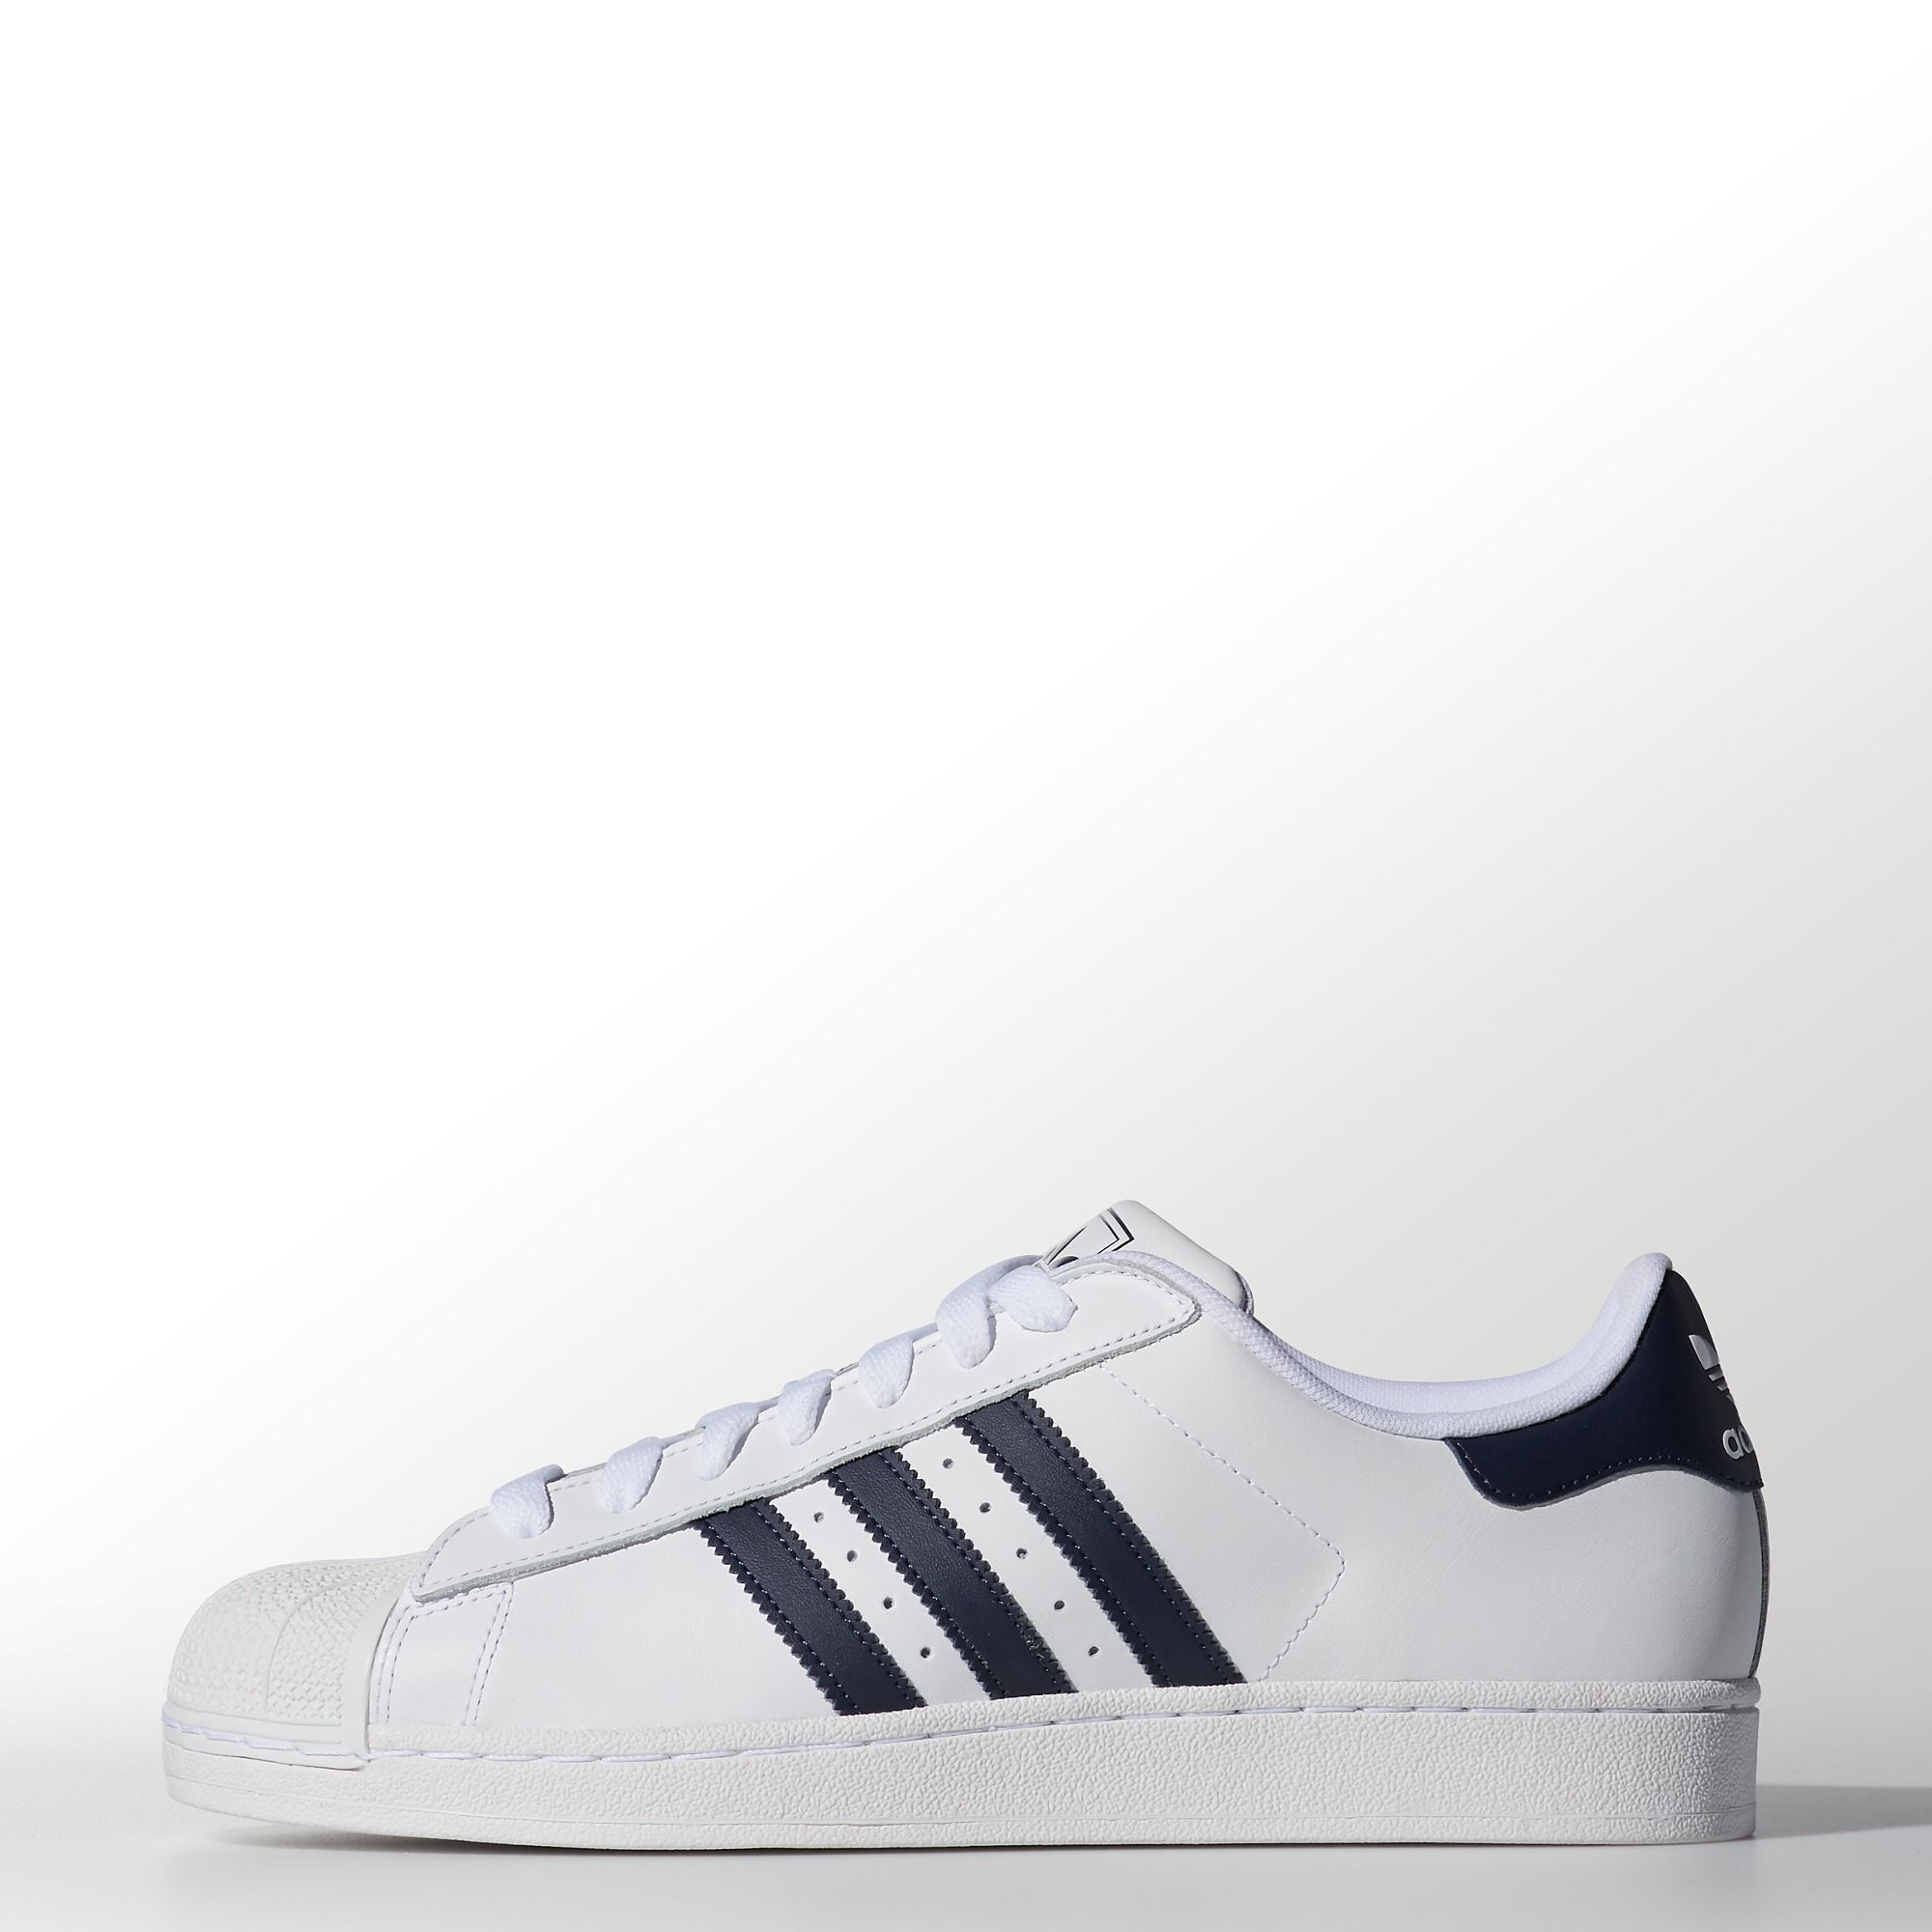 Still stepping forward with their iconic shell toe, these men's adidas  Originals Superstar 2.0 shoes